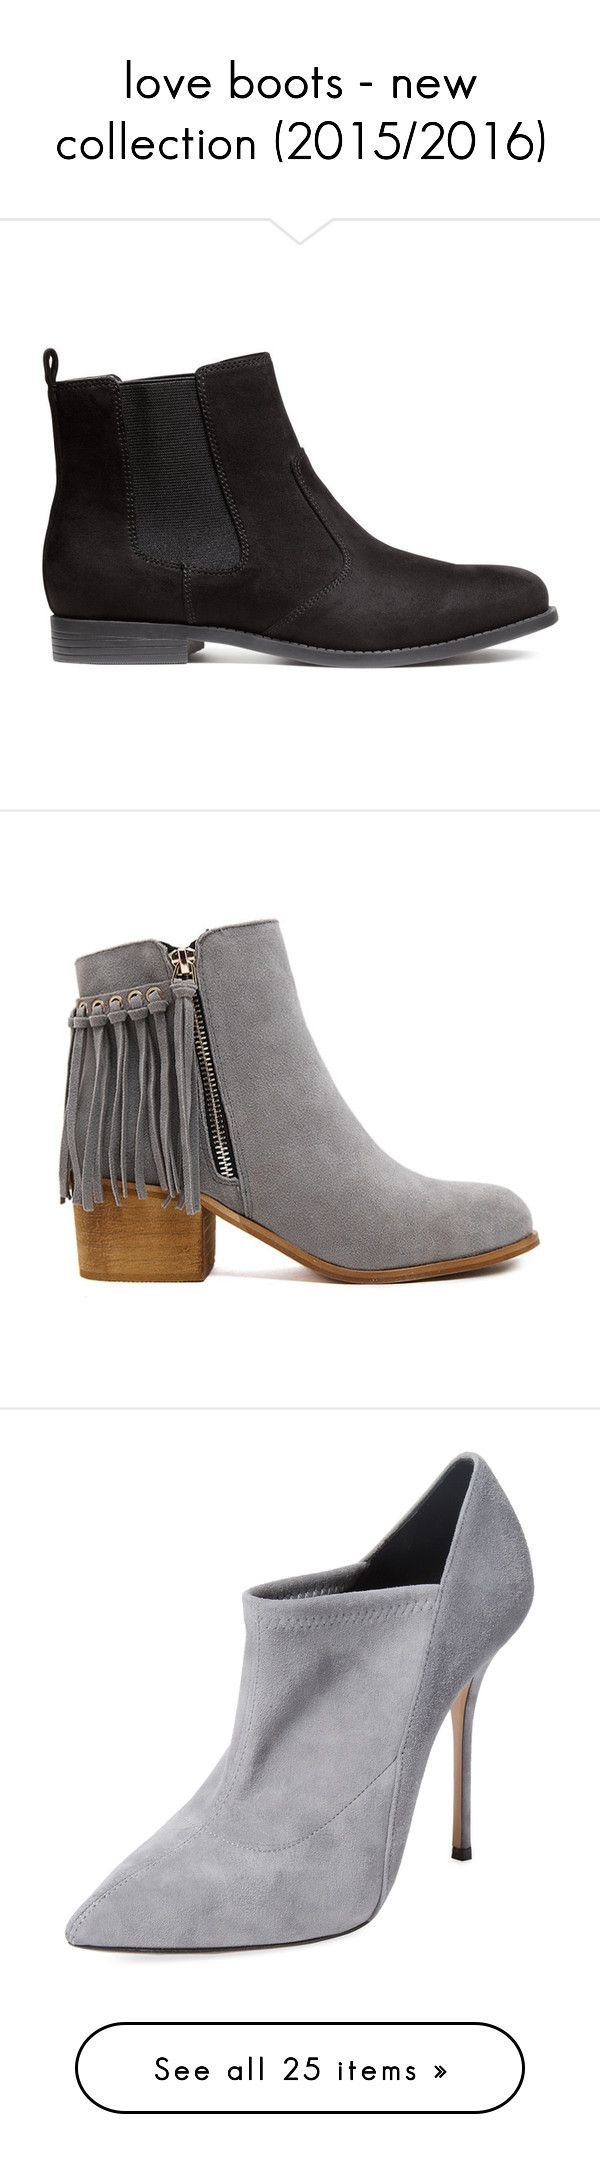 """""""love boots - new collection (2015/2016)"""" by bonadea007 ❤ liked on Polyvore featuring shoes, boots, ankle booties, black, stivali, chelsea boots, h&m boots, h&m, black chelsea boots and rubber sole boots"""